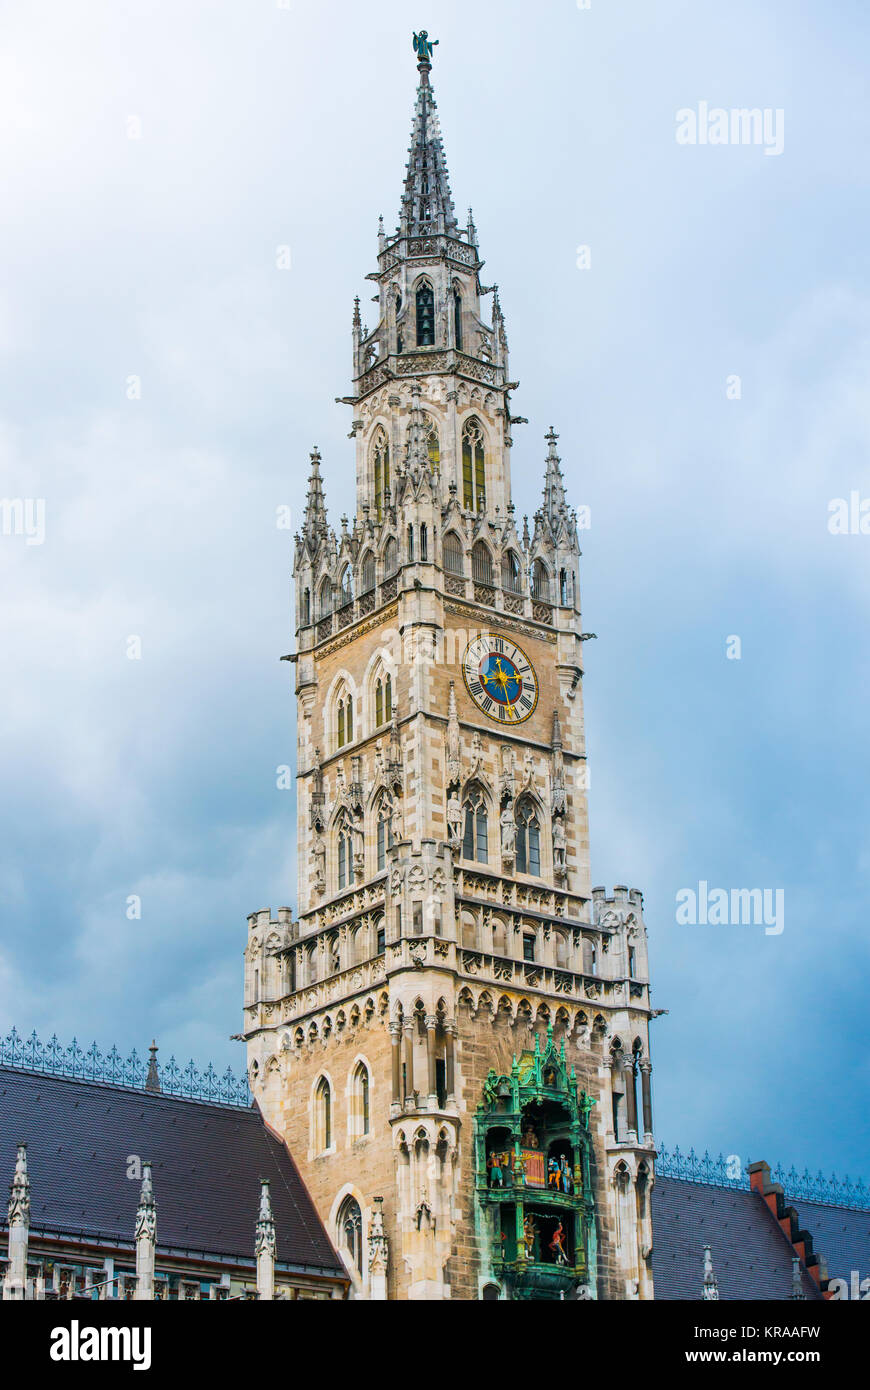 Hall in Munich - Stock Image